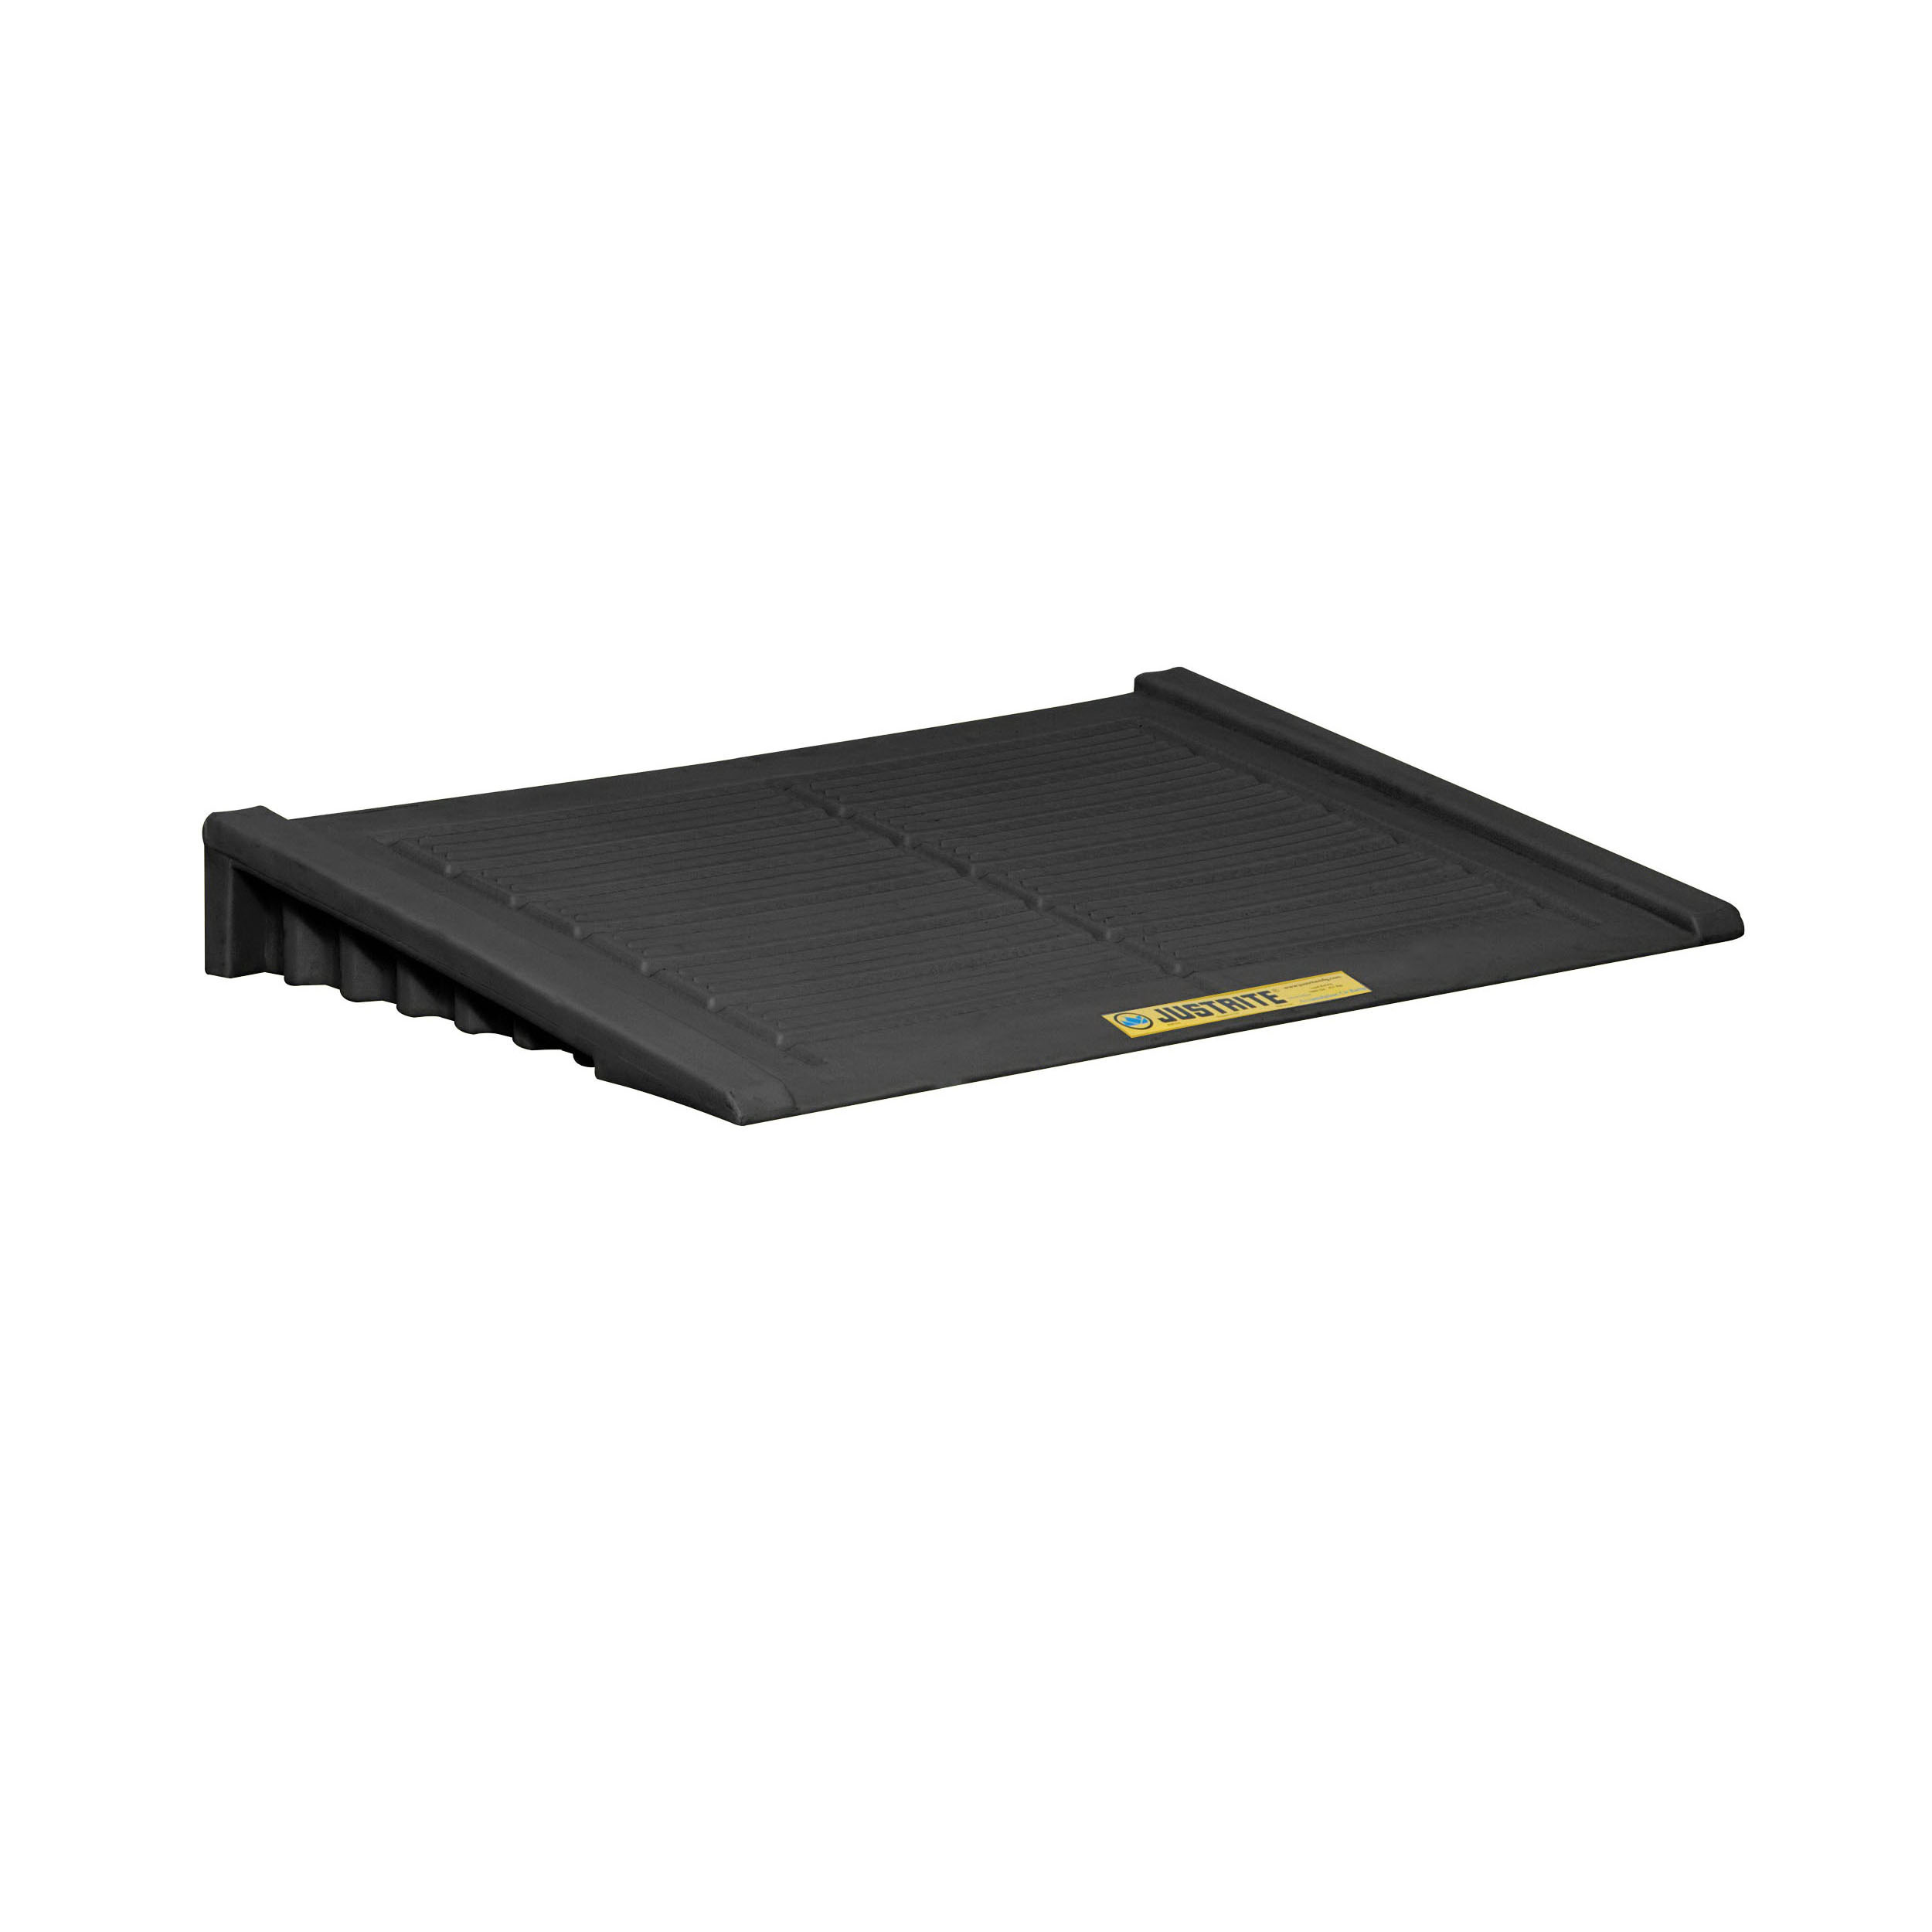 Justrite® 28687 Accumulation Center Ramp, 33 in L x 48 in W x 6-1/4 in H, 1000 lb Load, Recycled Polyethylene